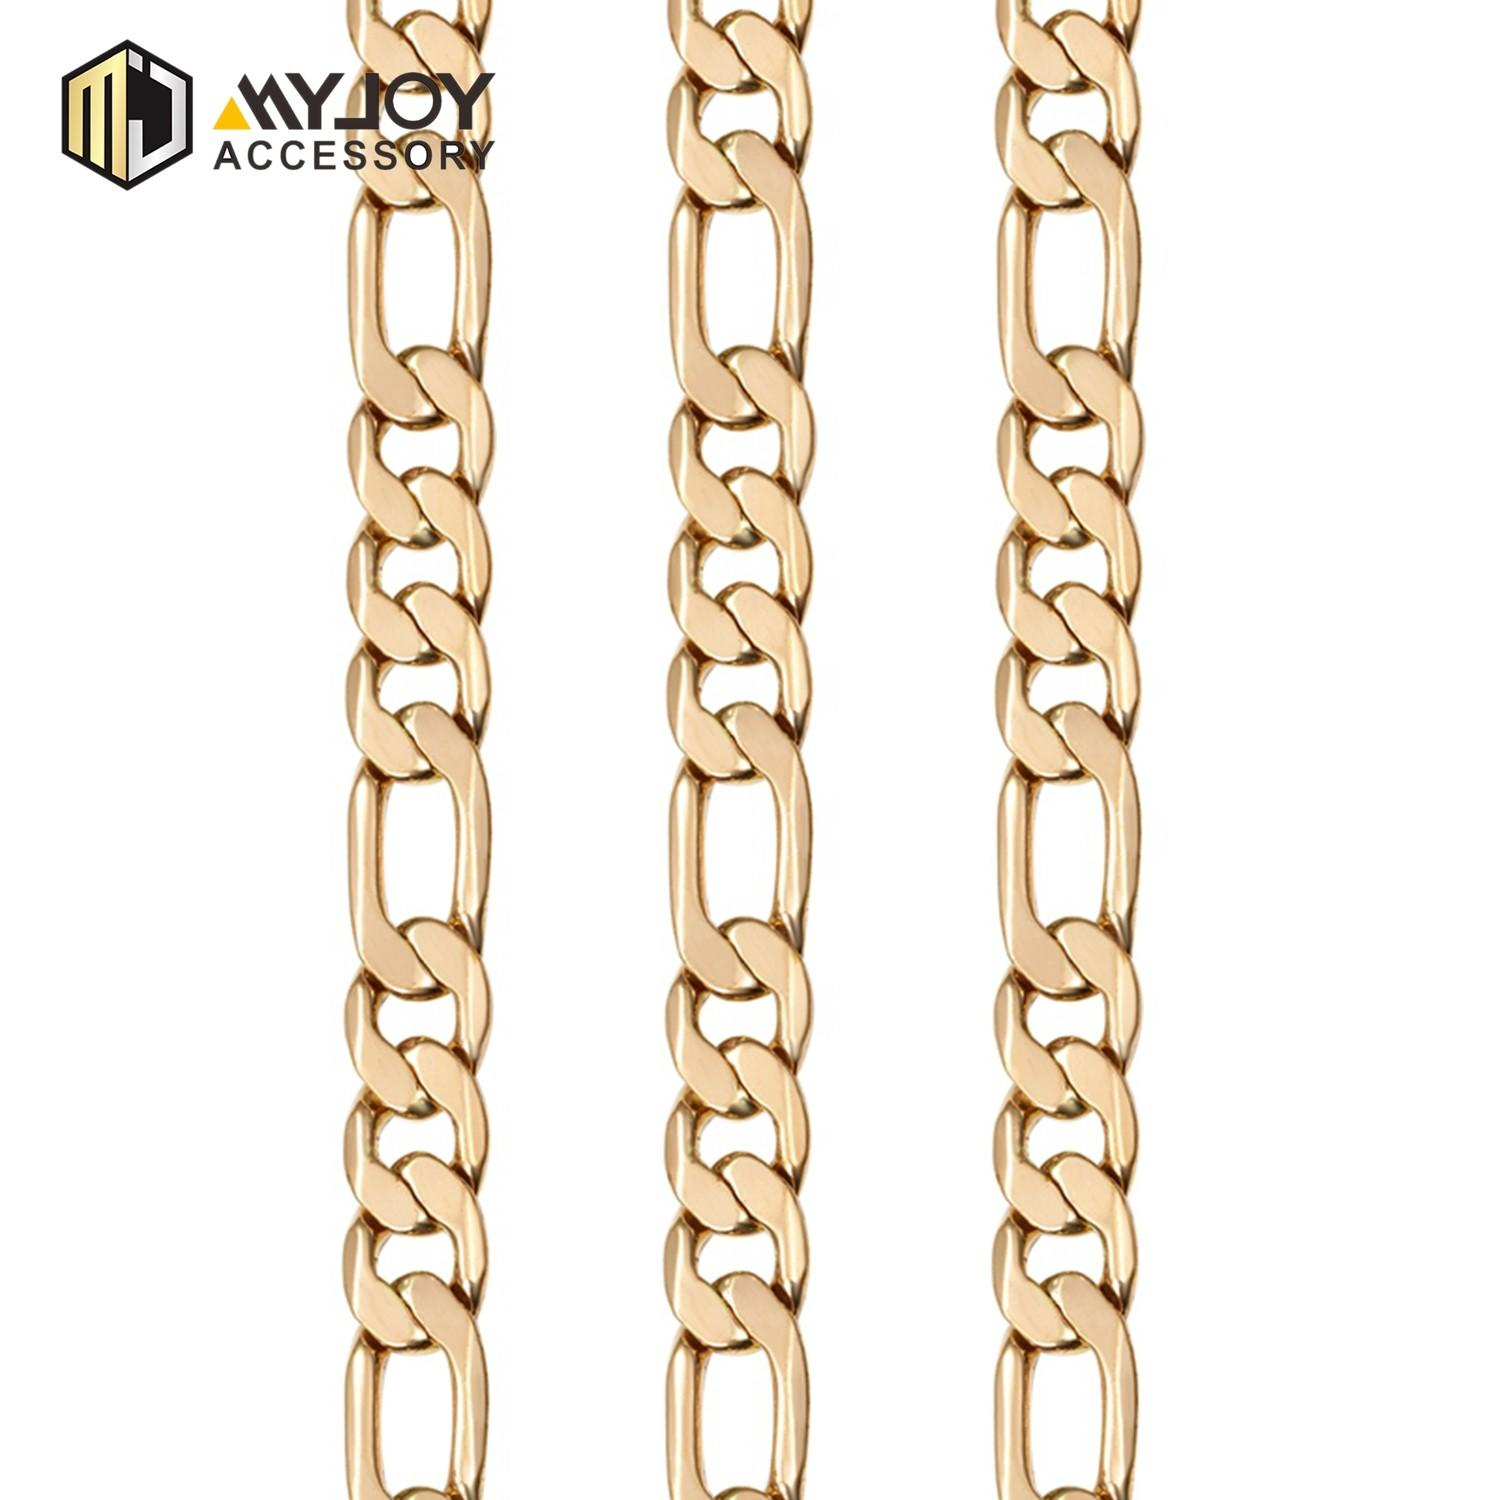 MYJOY cm handbag chain strap Supply for handbag-1